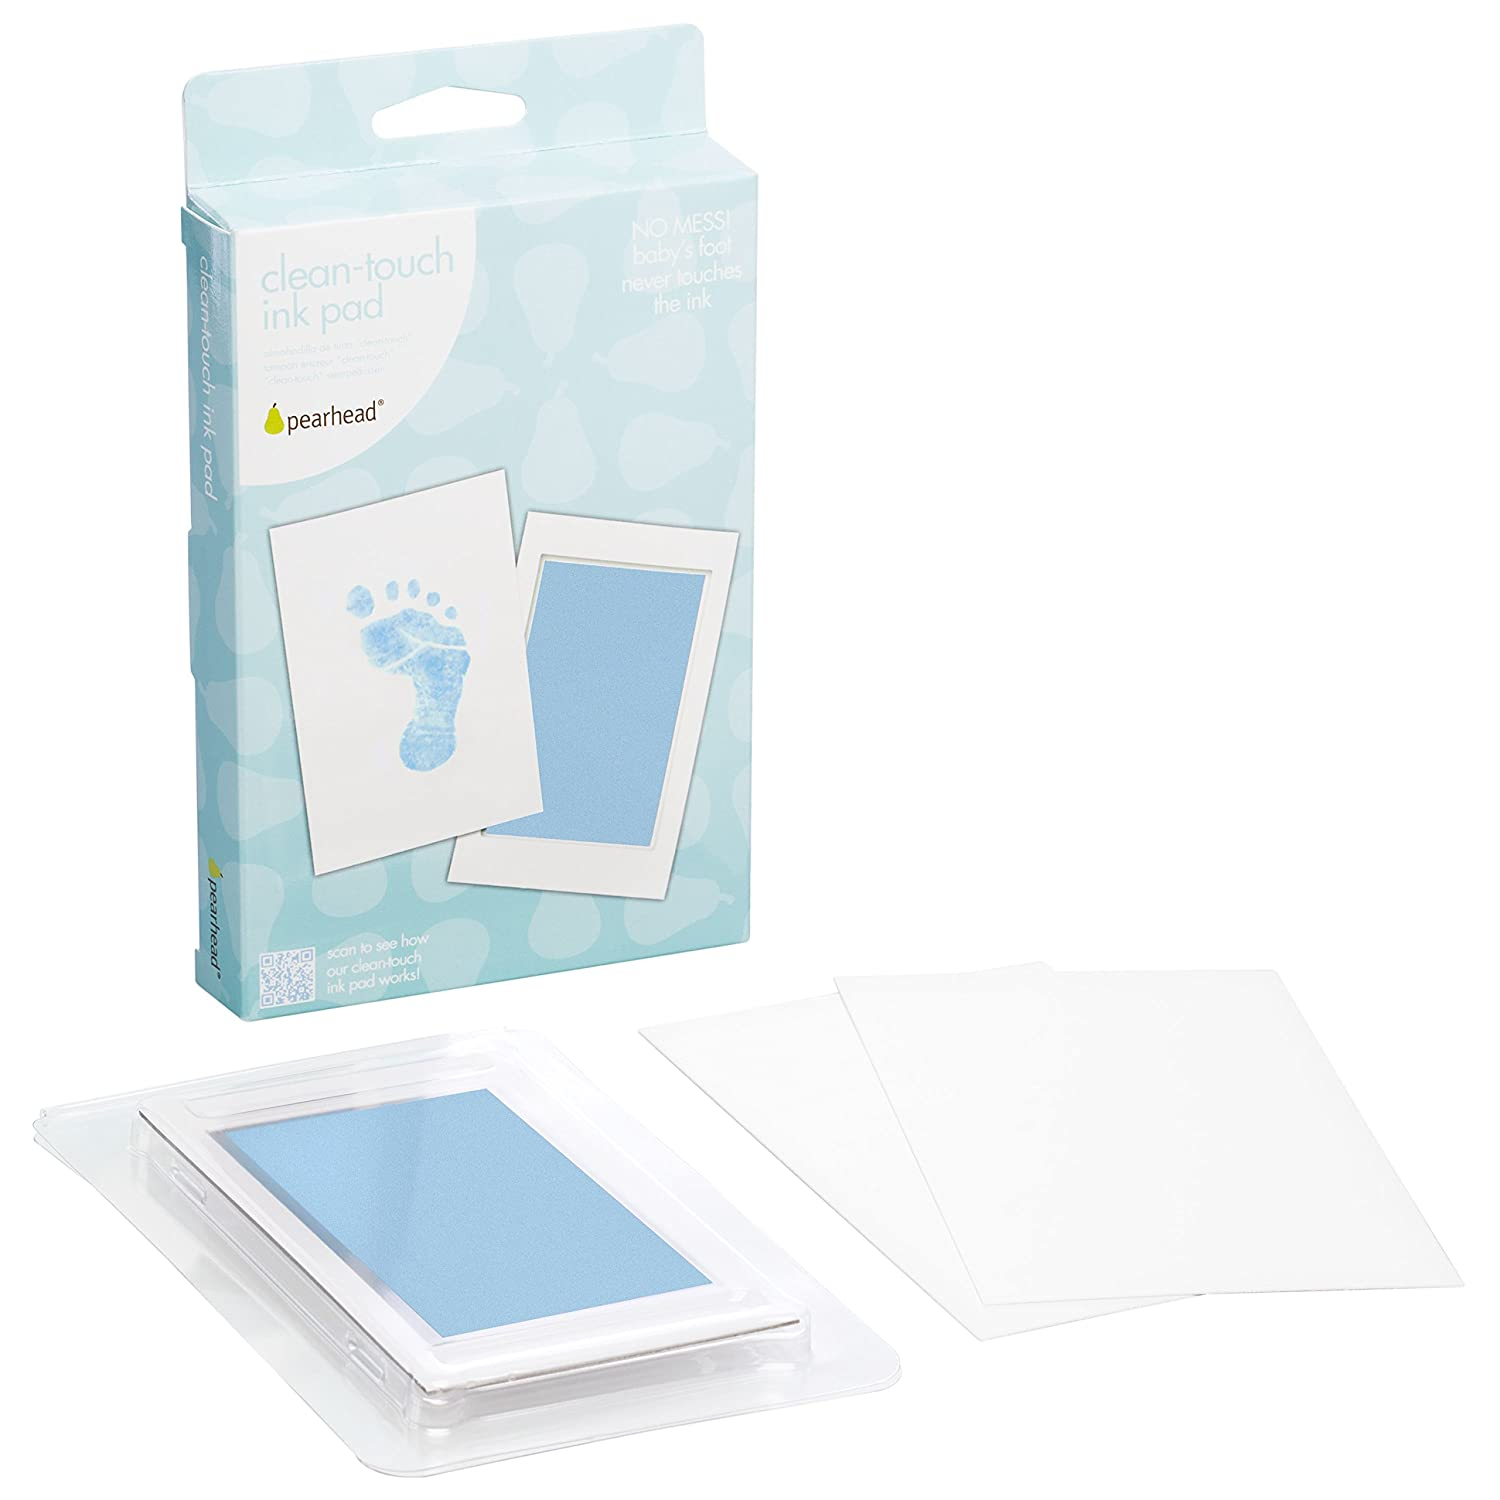 "Pearhead Newborn Baby Handprint or Footprint ""Clean-Touch"" Ink Pad, 2 Uses, Blue 00008"